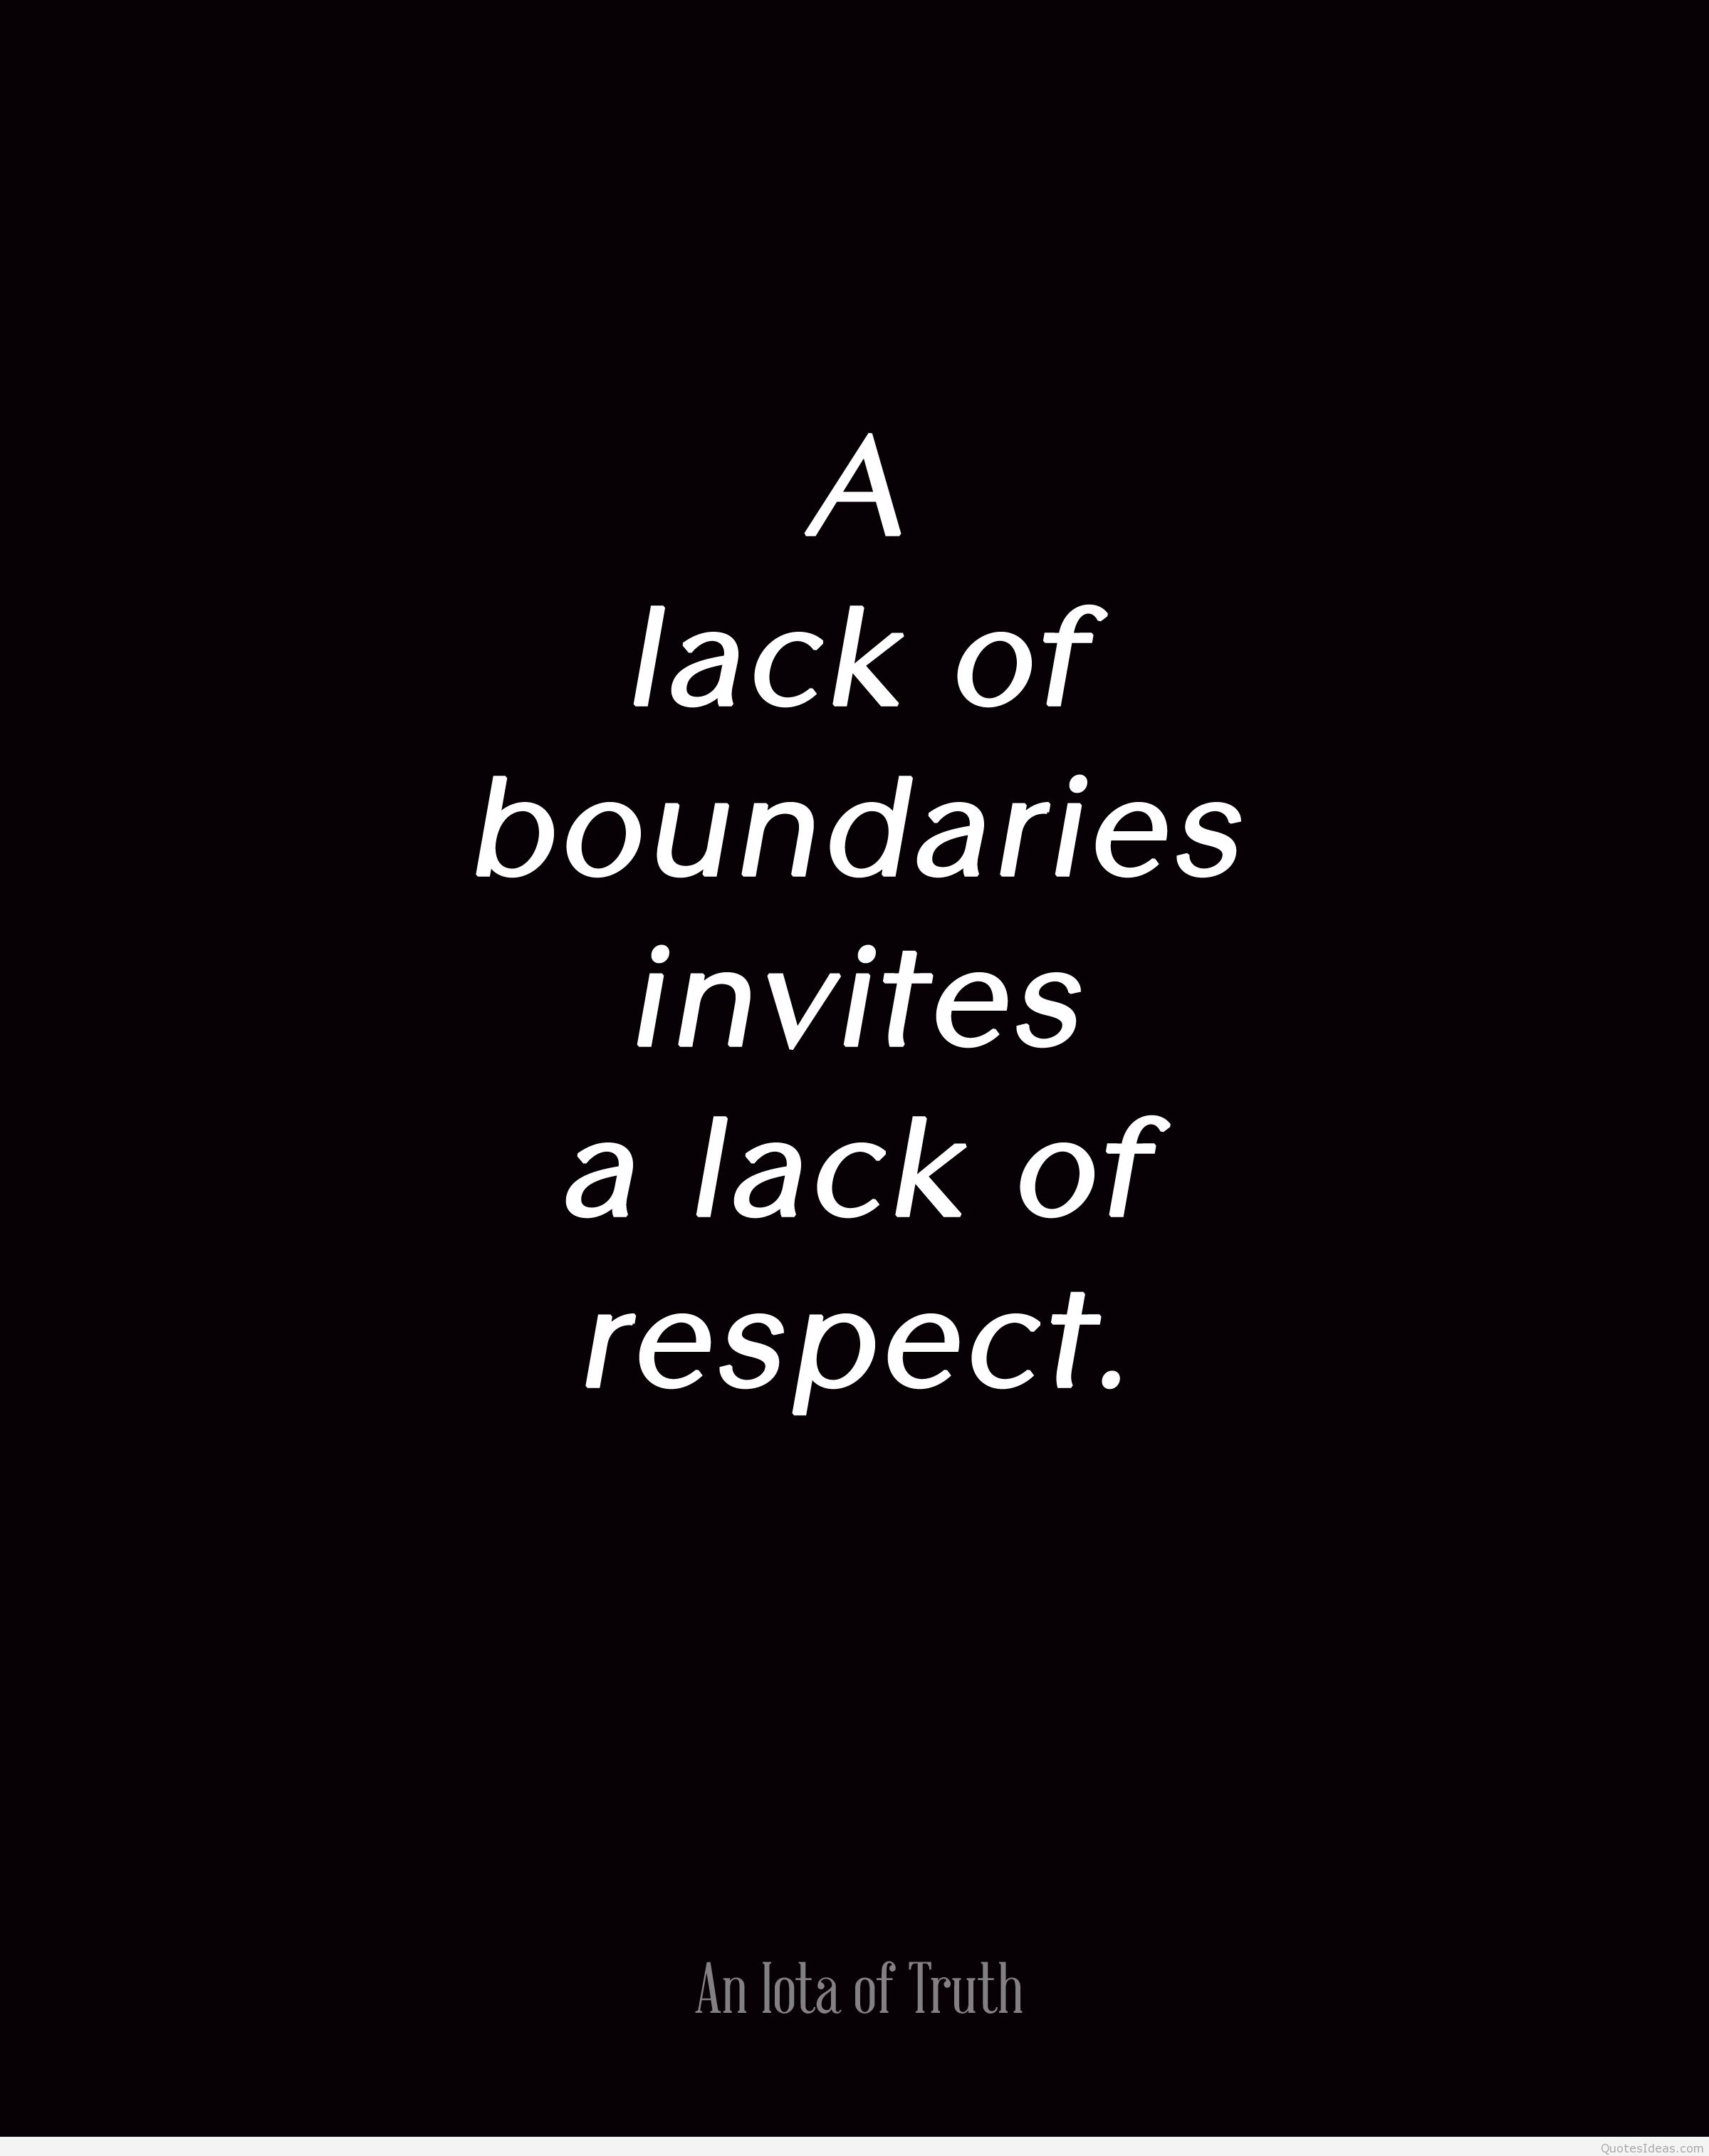 Quotes About Respect Images 27 Quotes